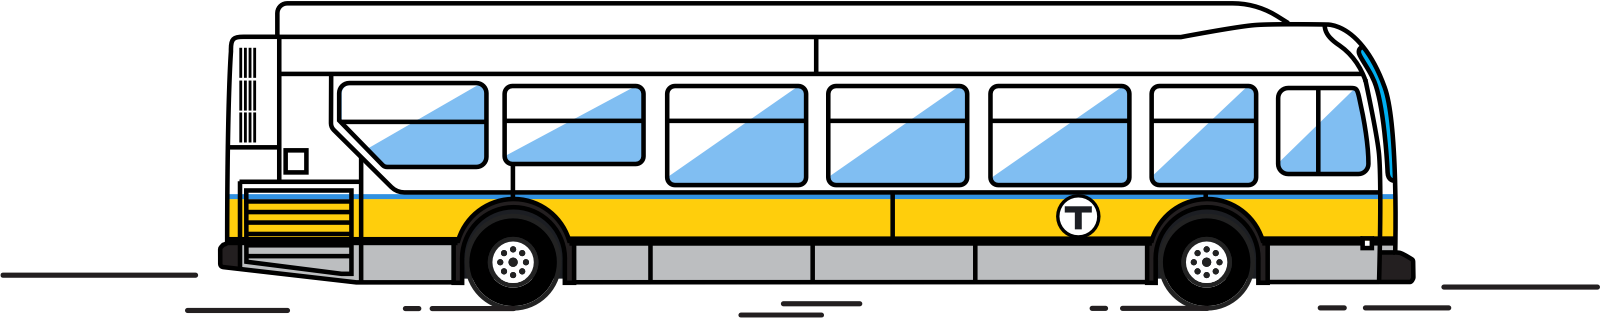 early-am-bus-vehicle-2x-departing.png